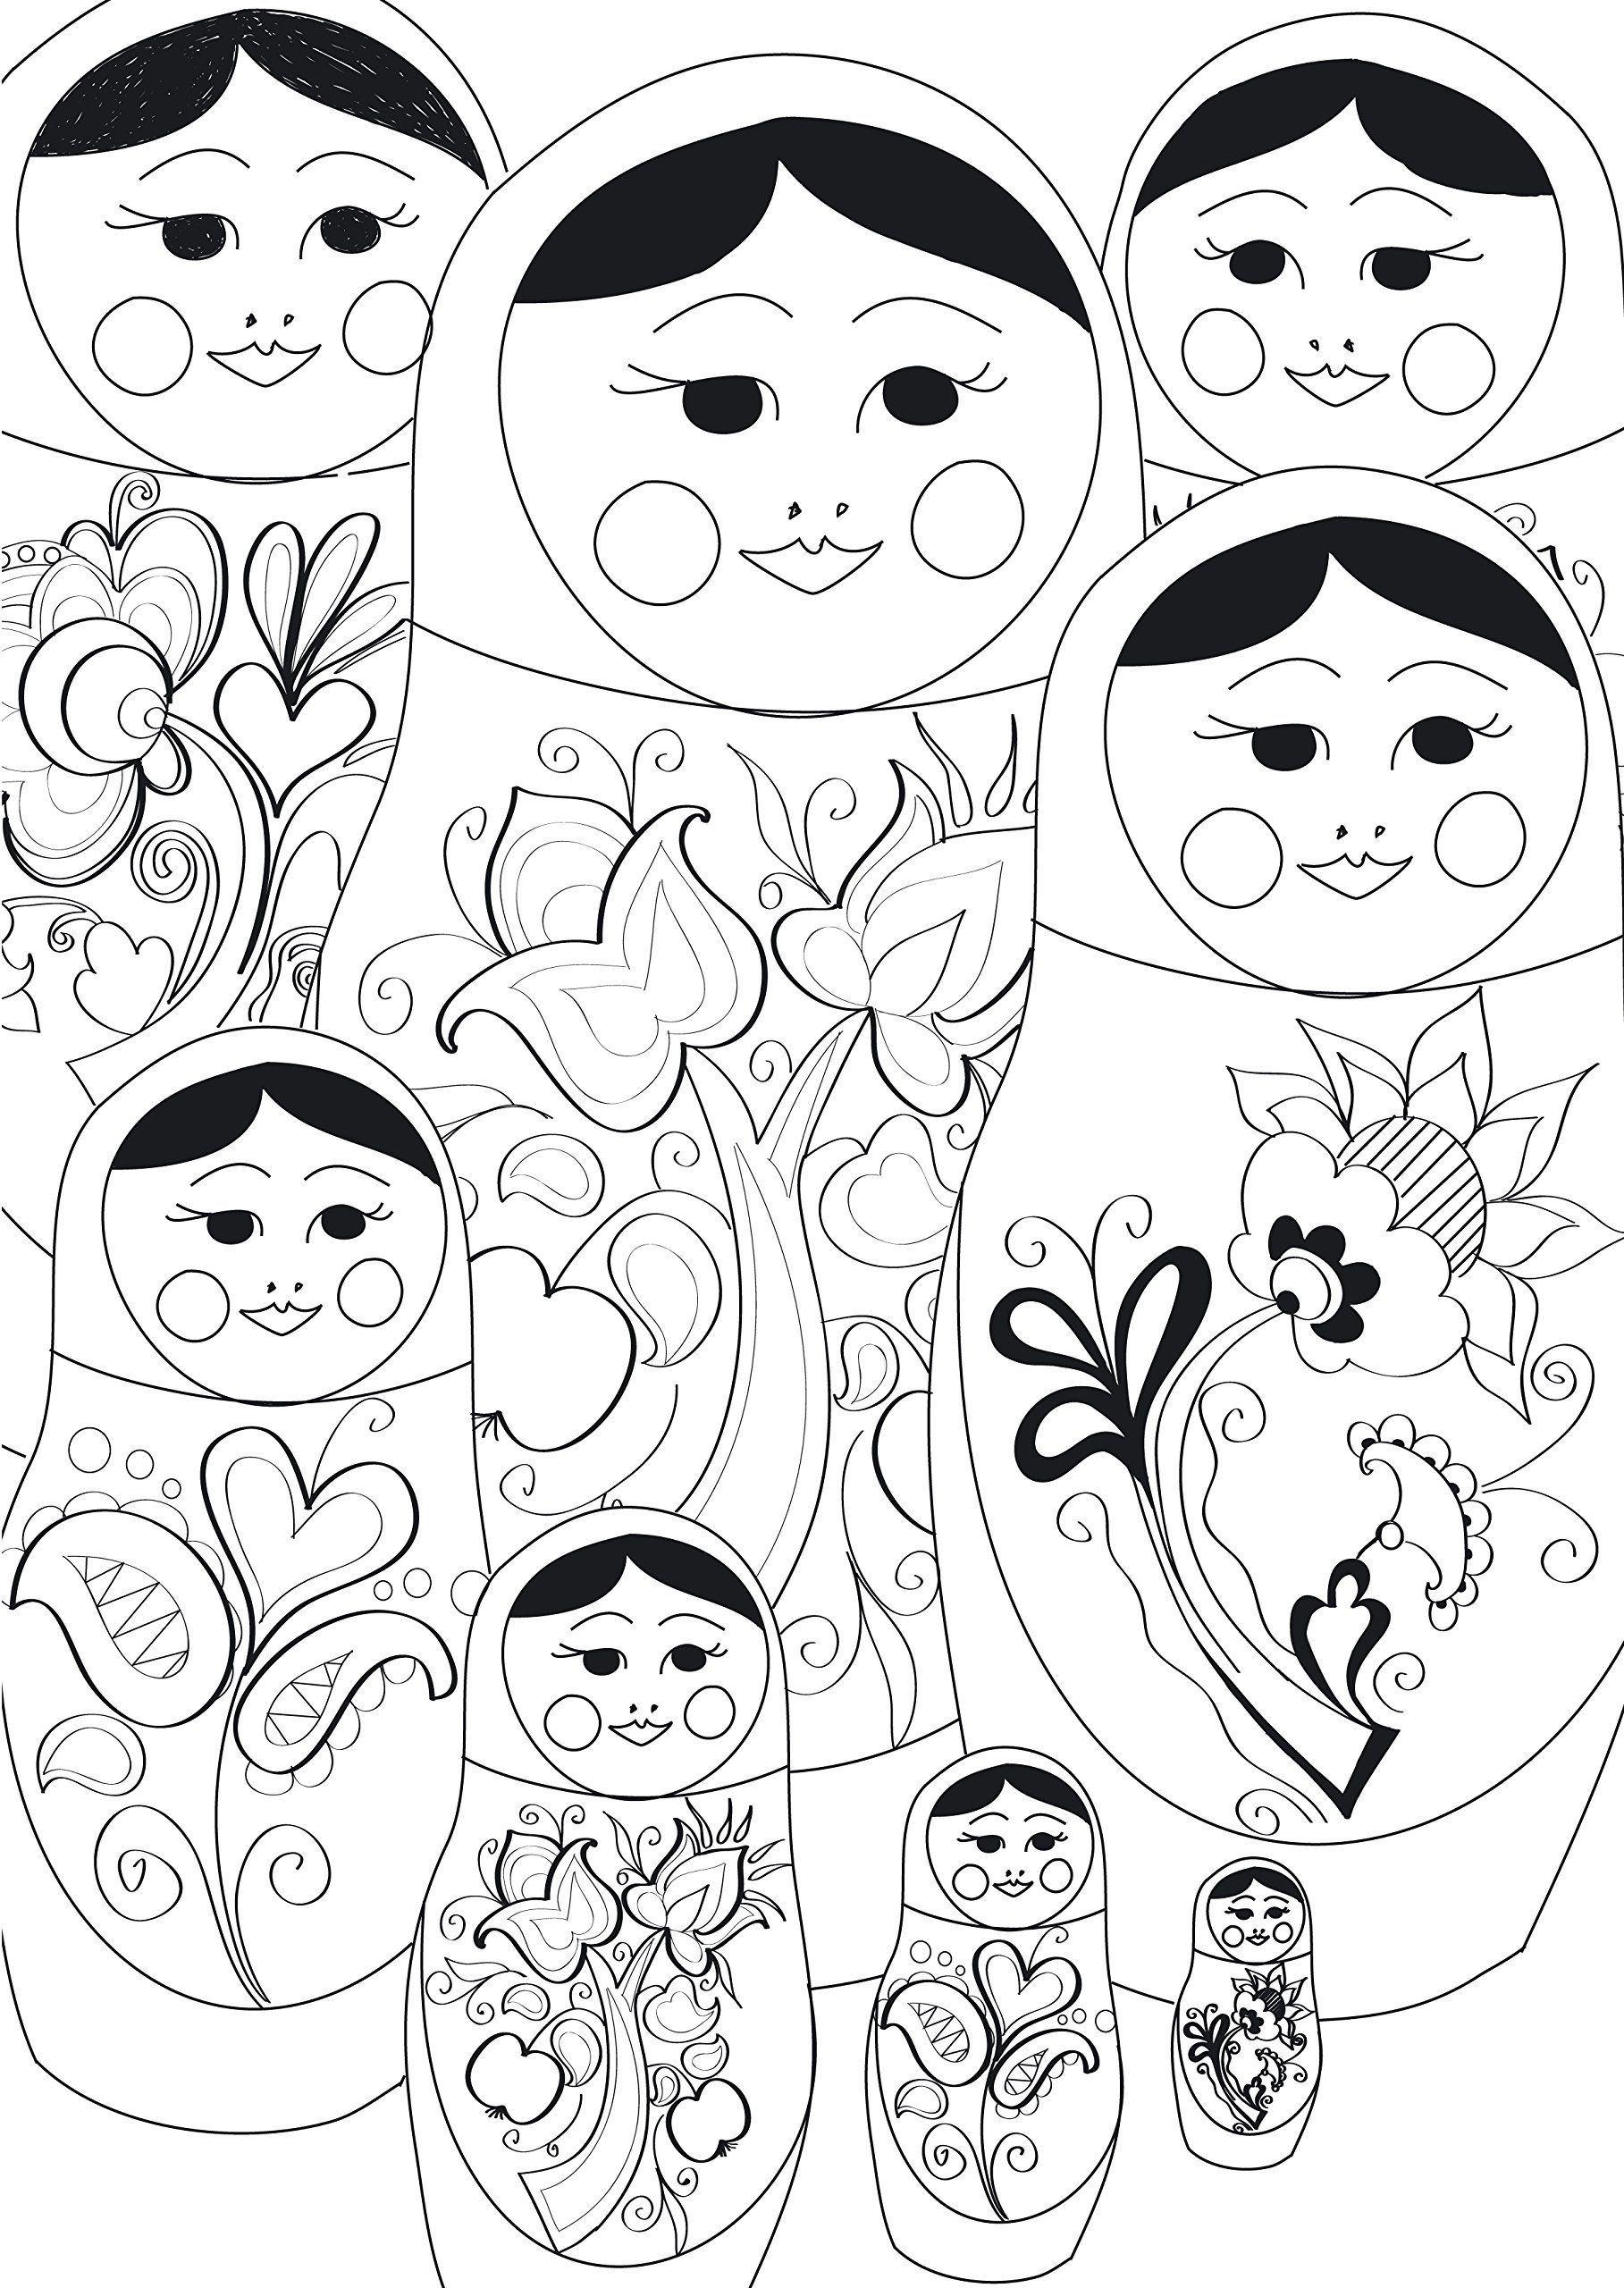 Amazon.fr - Hiver: 100 Coloriages Anti-Stress Art-Thérapie destiné Coloriage Amazon